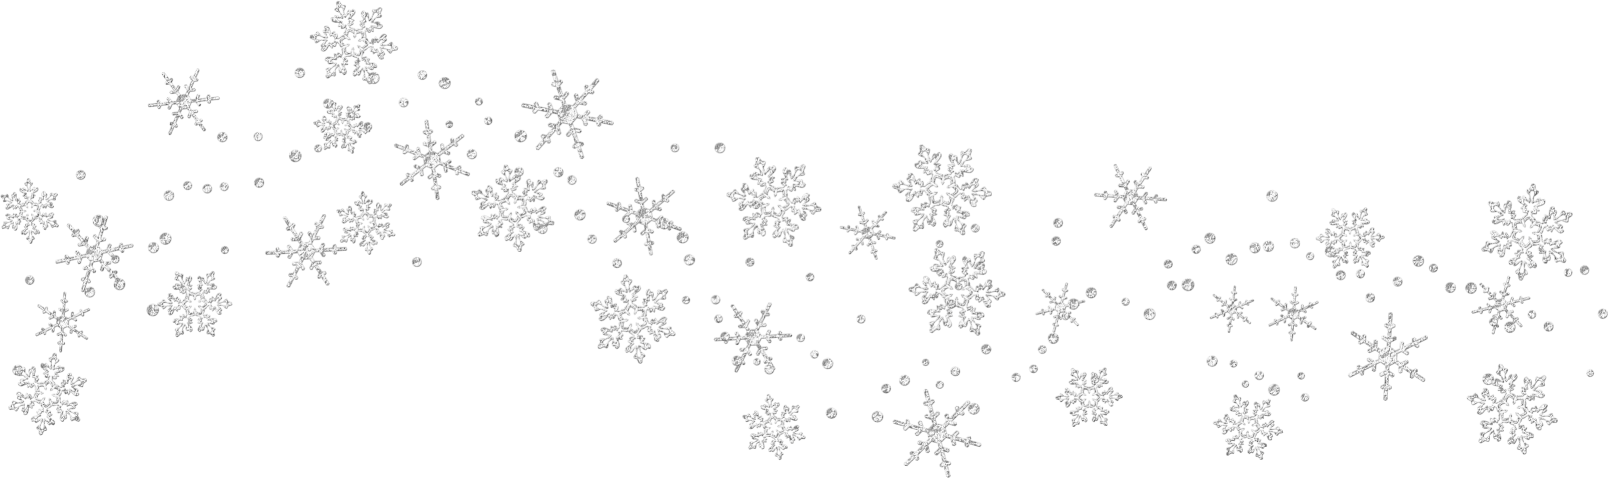 Snowflakes Picture 11575